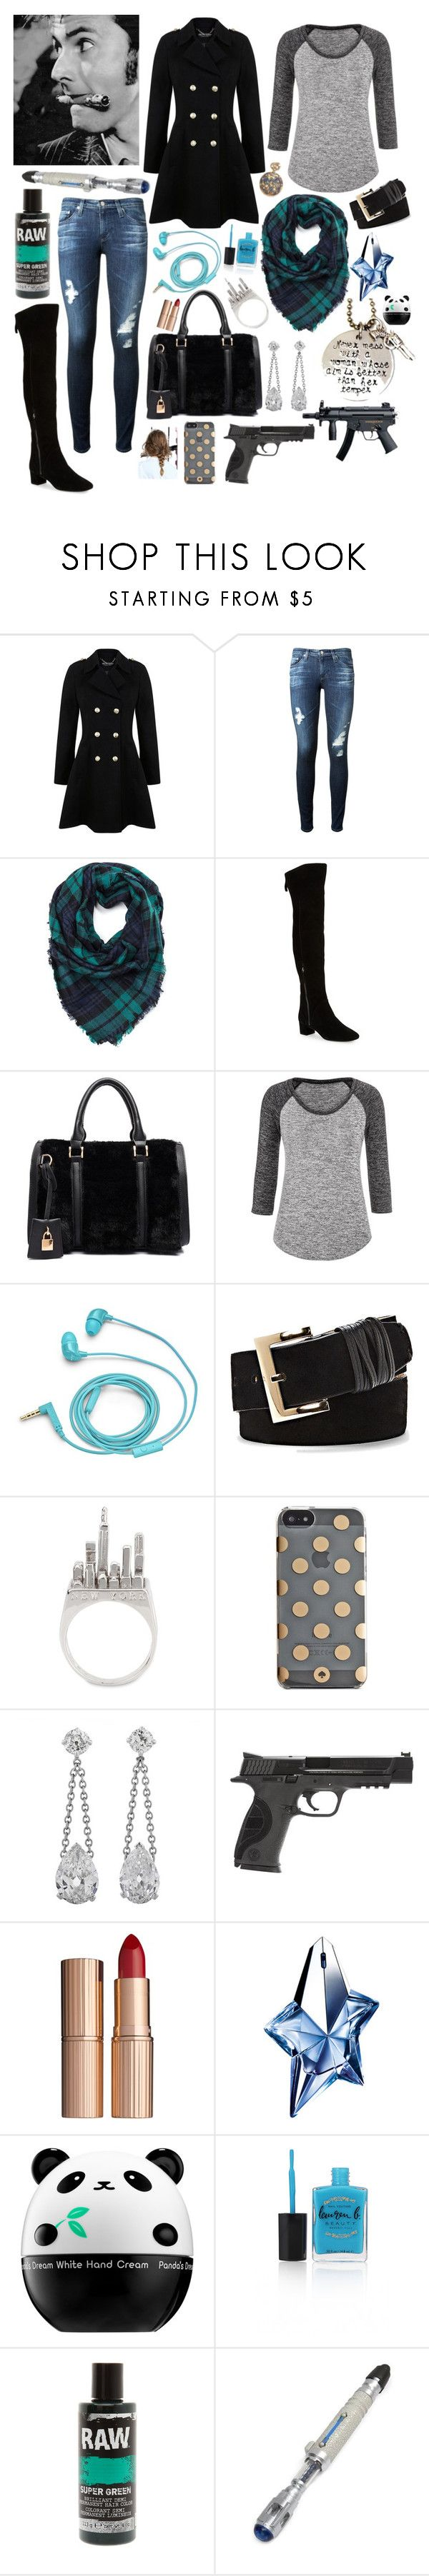 """""""DOCTOR WHO PRP:bio"""" by cyborgpuppyprincess ❤ liked on Polyvore featuring Miss Selfridge, AG Adriano Goldschmied, Nine West, maurices, FOSSIL, Vince Camuto, Anello, Kate Spade, Smith & Wesson and Charlotte Tilbury"""